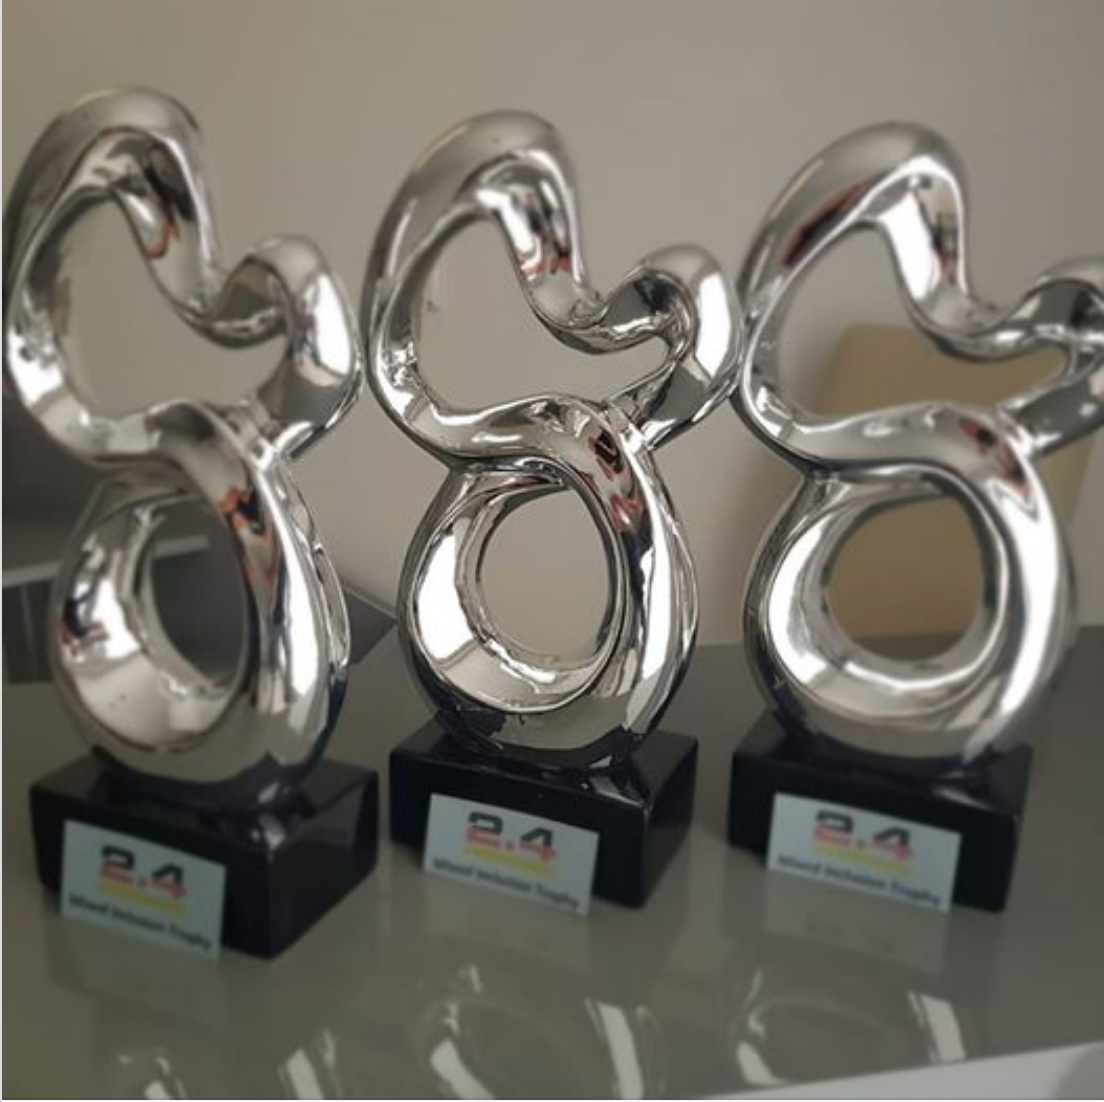 """MITeinander – Mixed Inclusion Trophy<span class=""""rmp-archive-results-widget """"><i class="""" rmp-icon rmp-icon--ratings rmp-icon--trophy rmp-icon--full-highlight""""></i><i class="""" rmp-icon rmp-icon--ratings rmp-icon--trophy rmp-icon--full-highlight""""></i><i class="""" rmp-icon rmp-icon--ratings rmp-icon--trophy rmp-icon--full-highlight""""></i><i class="""" rmp-icon rmp-icon--ratings rmp-icon--trophy rmp-icon--full-highlight""""></i><i class="""" rmp-icon rmp-icon--ratings rmp-icon--trophy rmp-icon--full-highlight""""></i> <span>5 (1)</span></span>"""